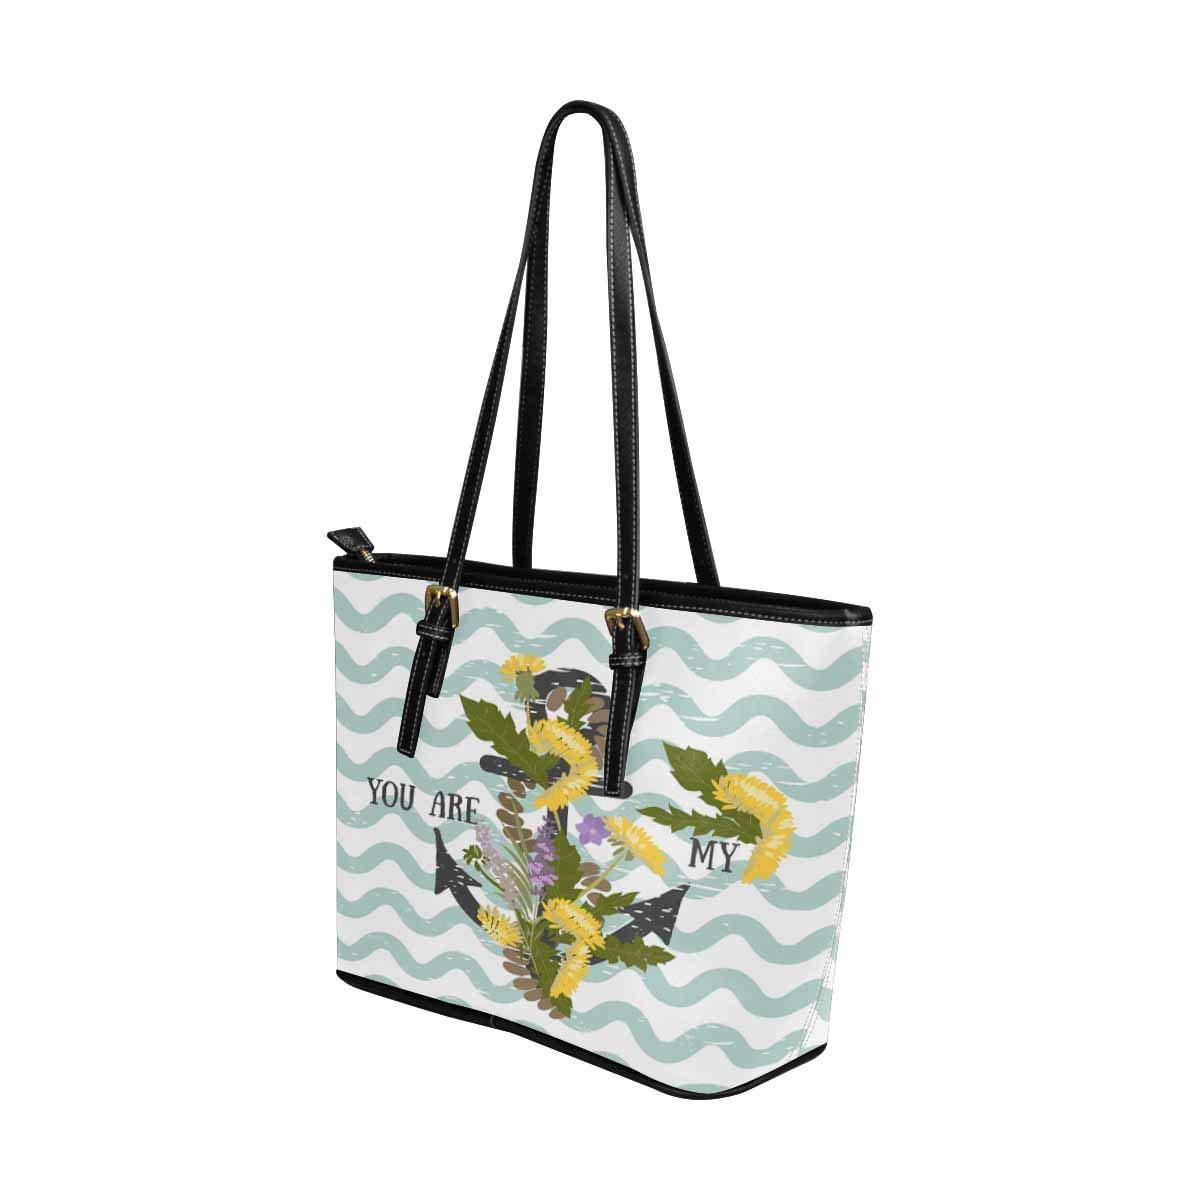 InterestPrint Tote Bags Zippered Tote for Women Overnight HandBags